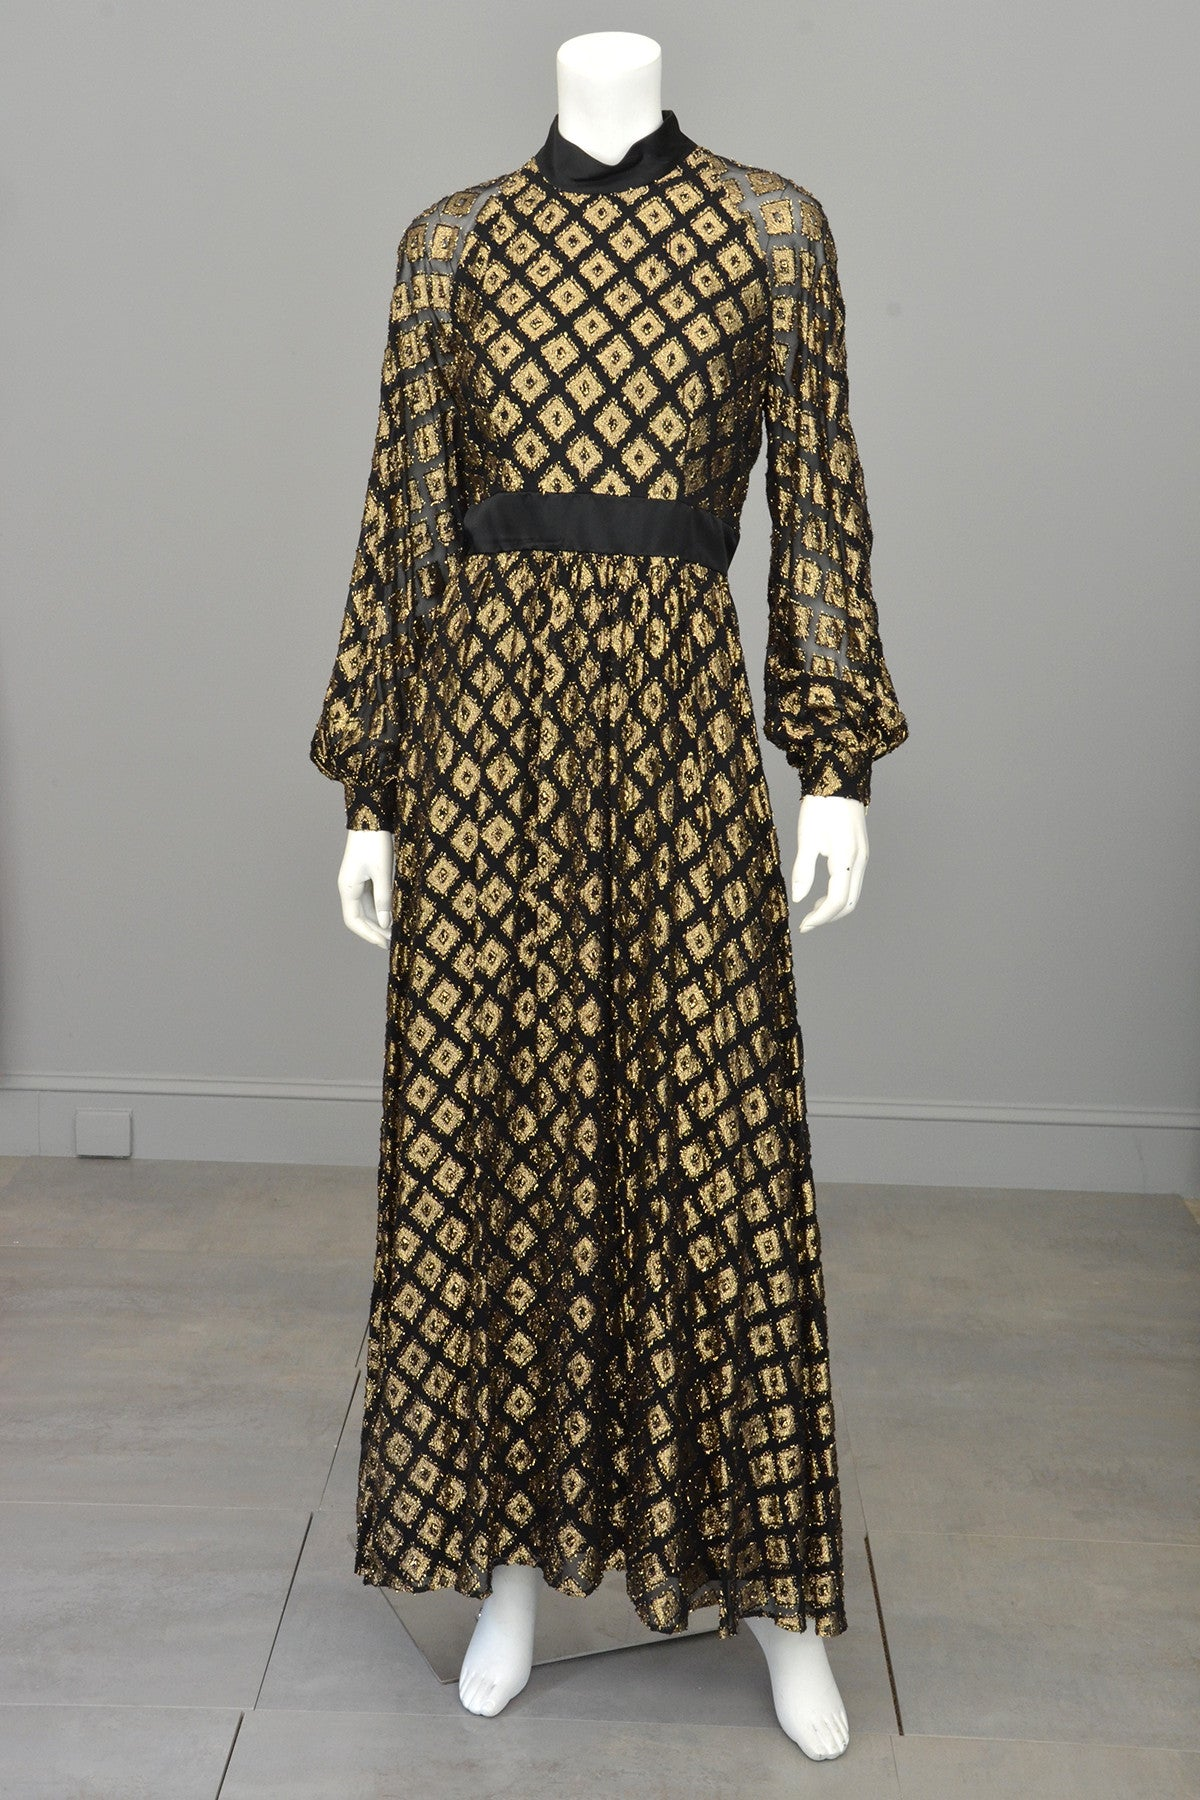 1970s Black Chiffon Gold Lamé Full Skirt Maxi Dress Gown